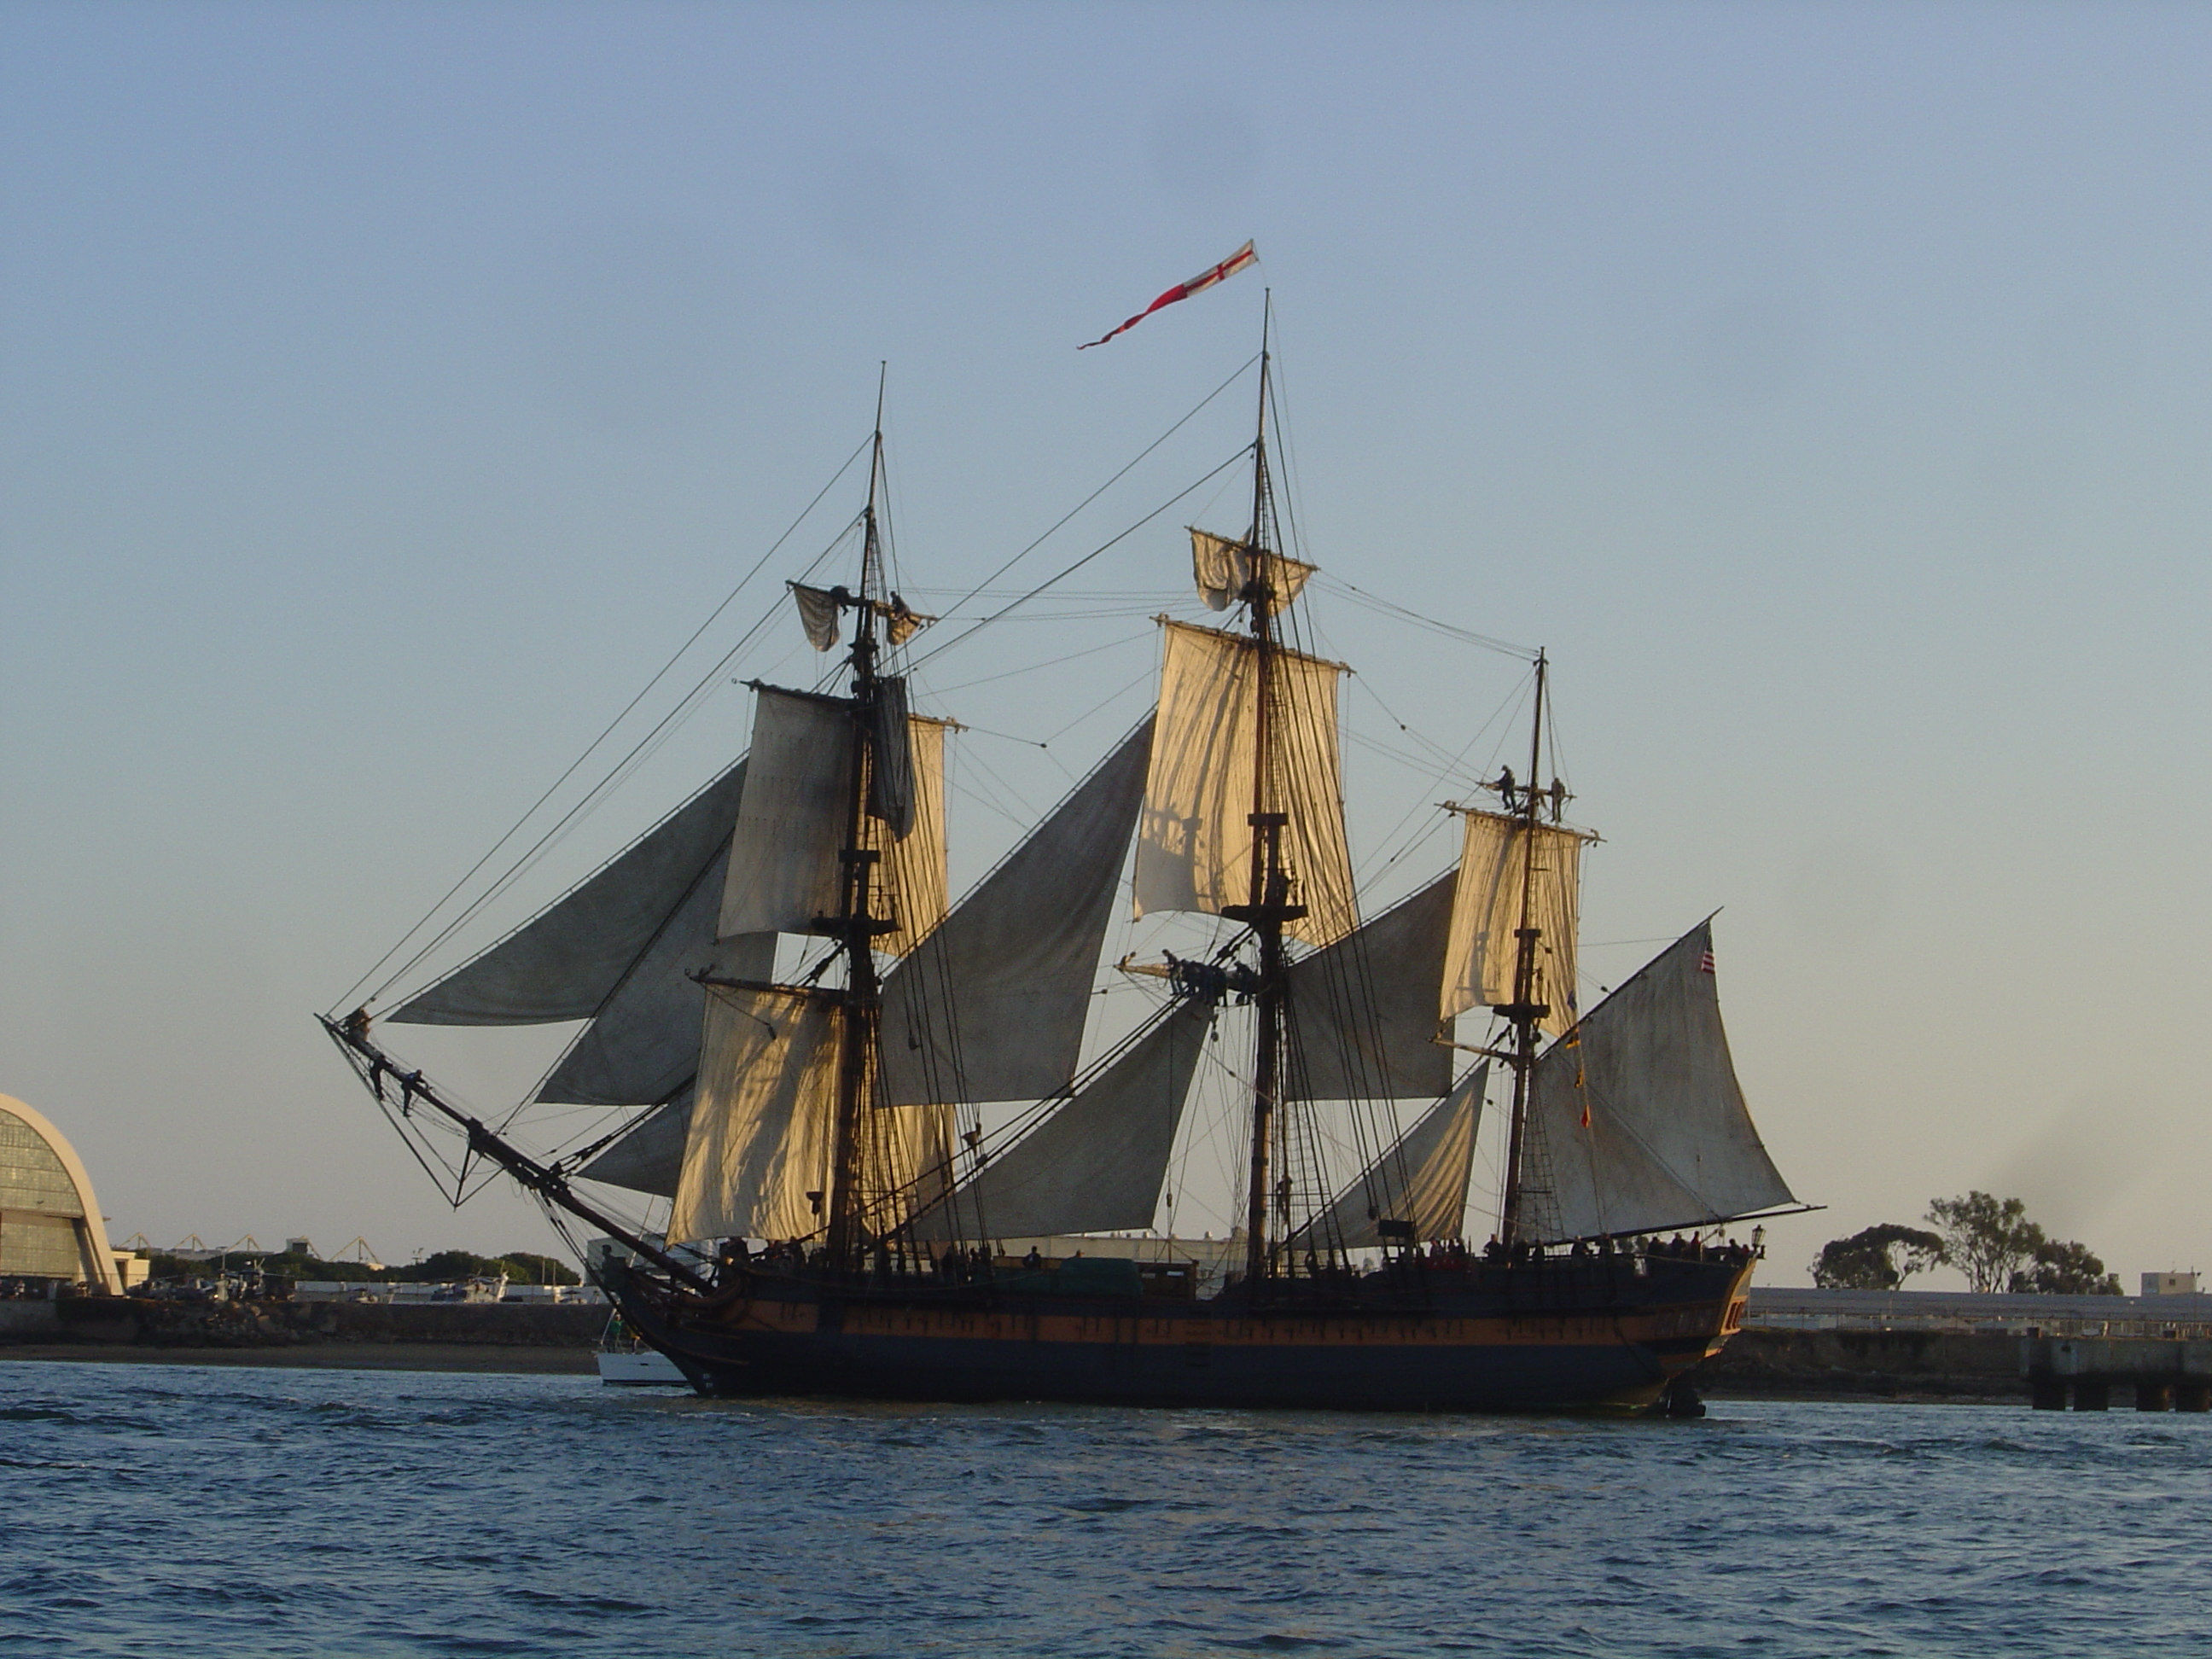 photo Tall Ship Day HMS Surprise from the movie Master